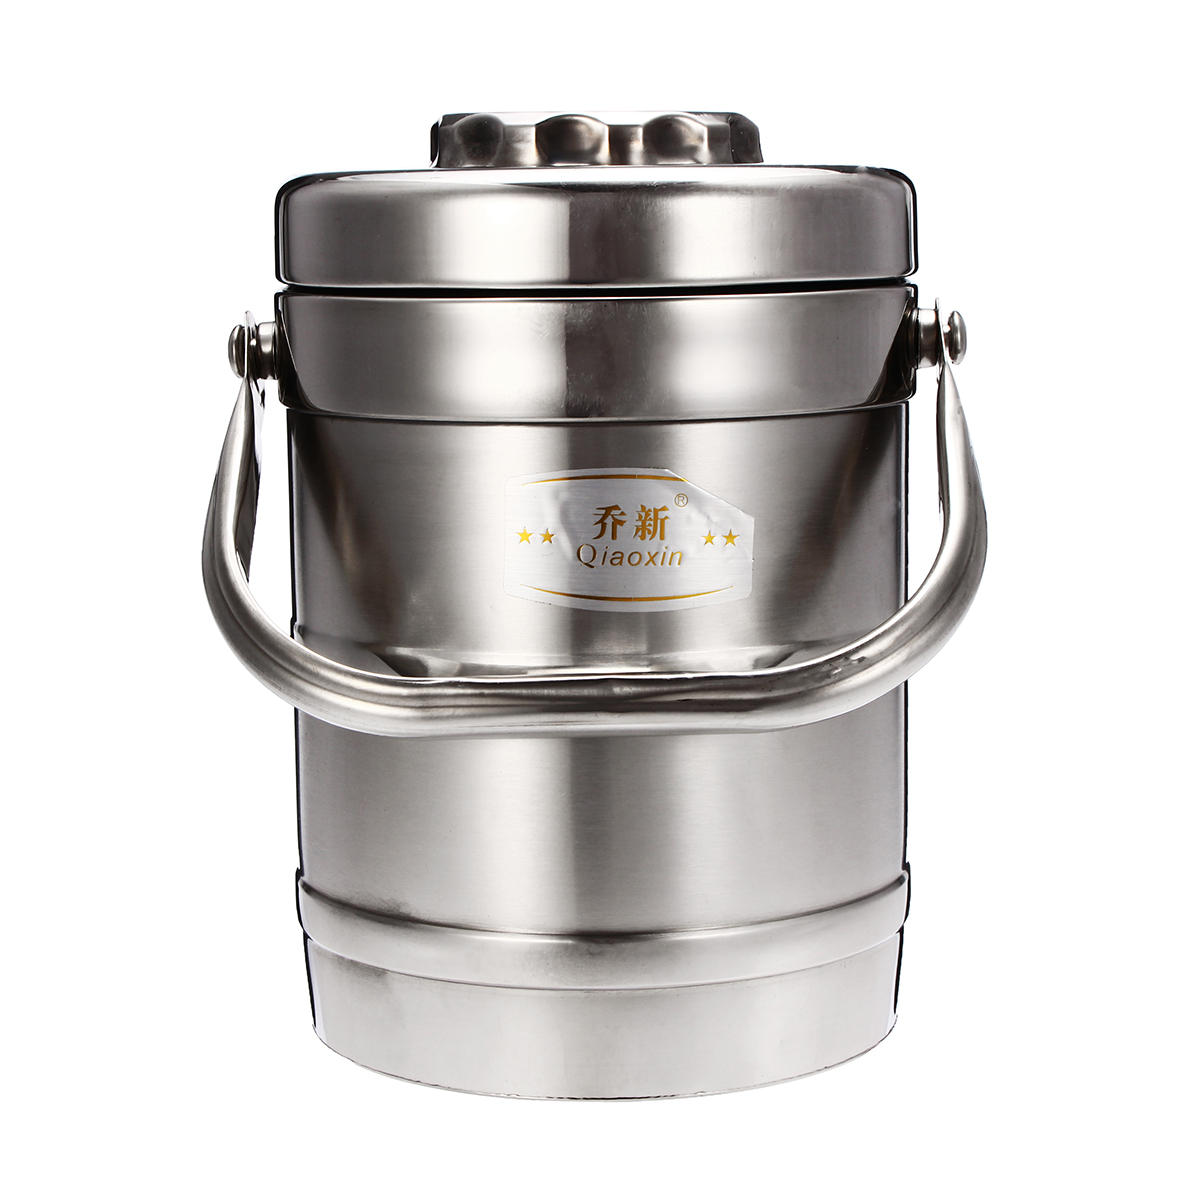 QIAOXIN 1.5/1.9L Stainless Steel Thermal Lunch Box Vacuum Insulated Jar Food Container